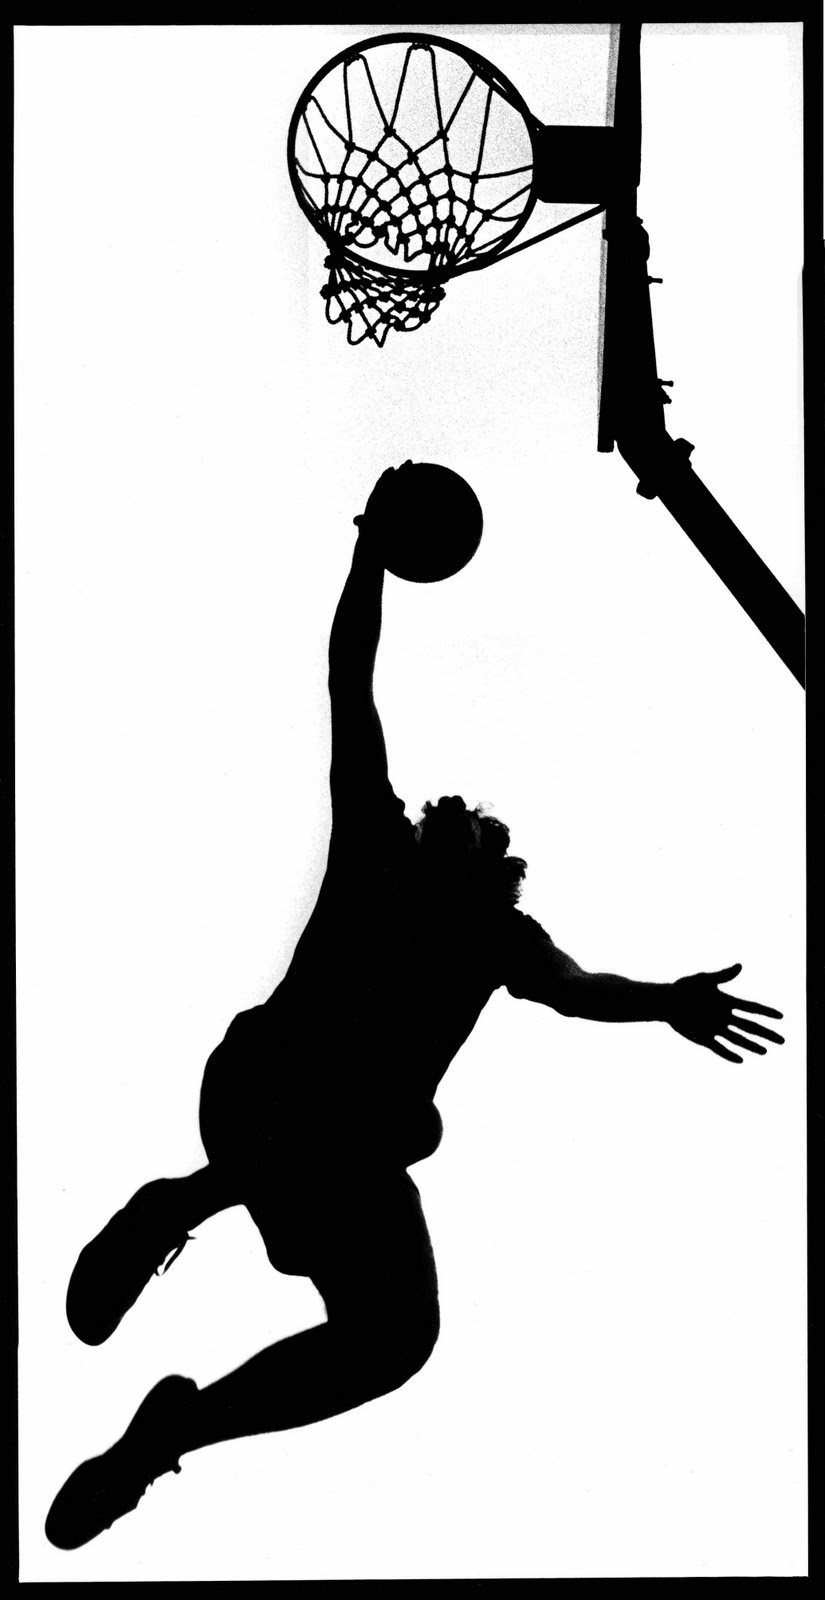 825x1600 Free Silhouette Cut Outs For Decorations Shooting Basketball